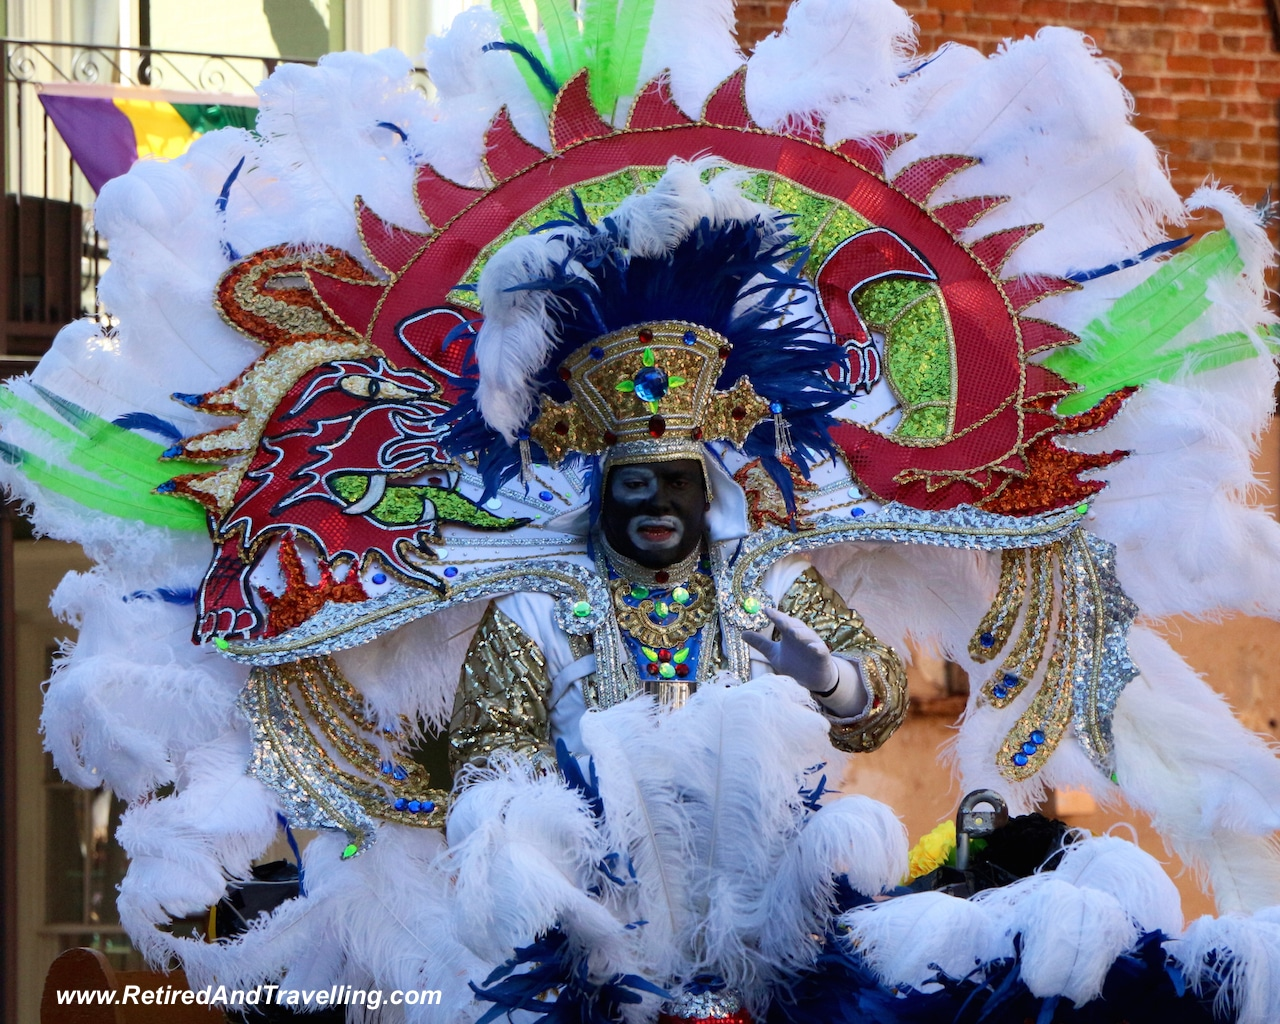 Zulu - Mardi Gras Parades - 8 Days in New Orleans.jpg